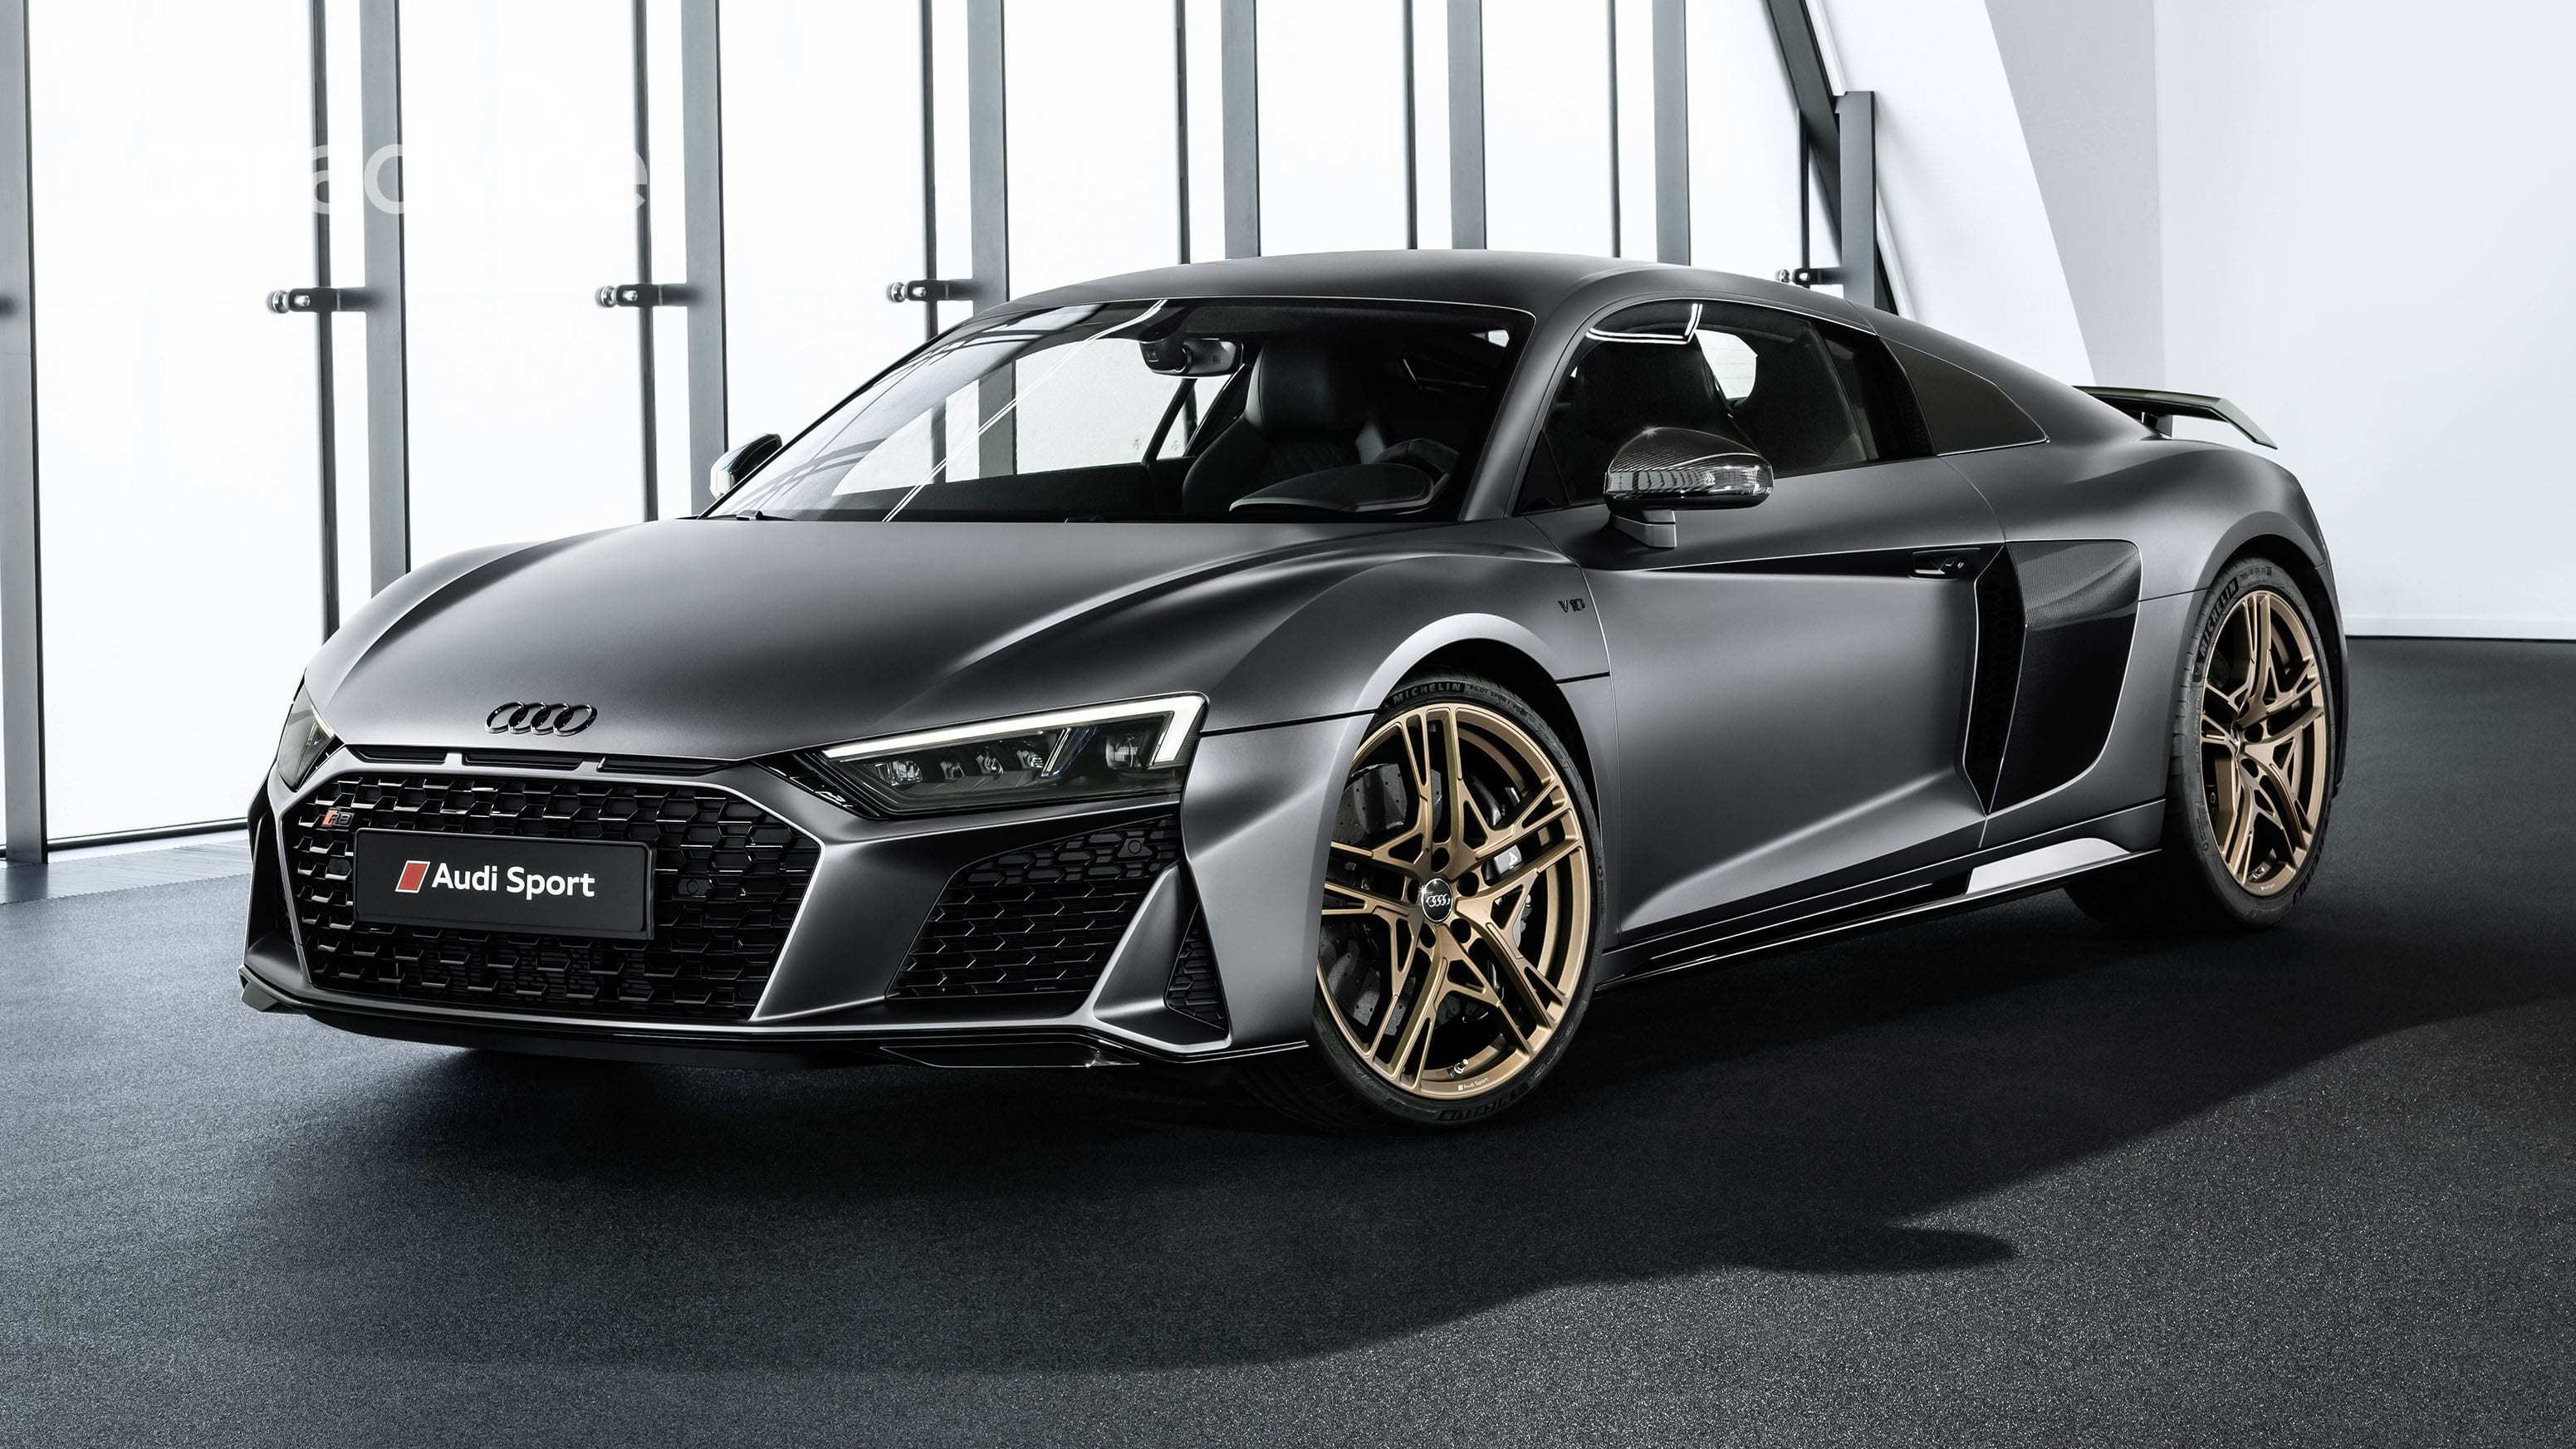 40 The Best 2019 Audi R8 Price And Review